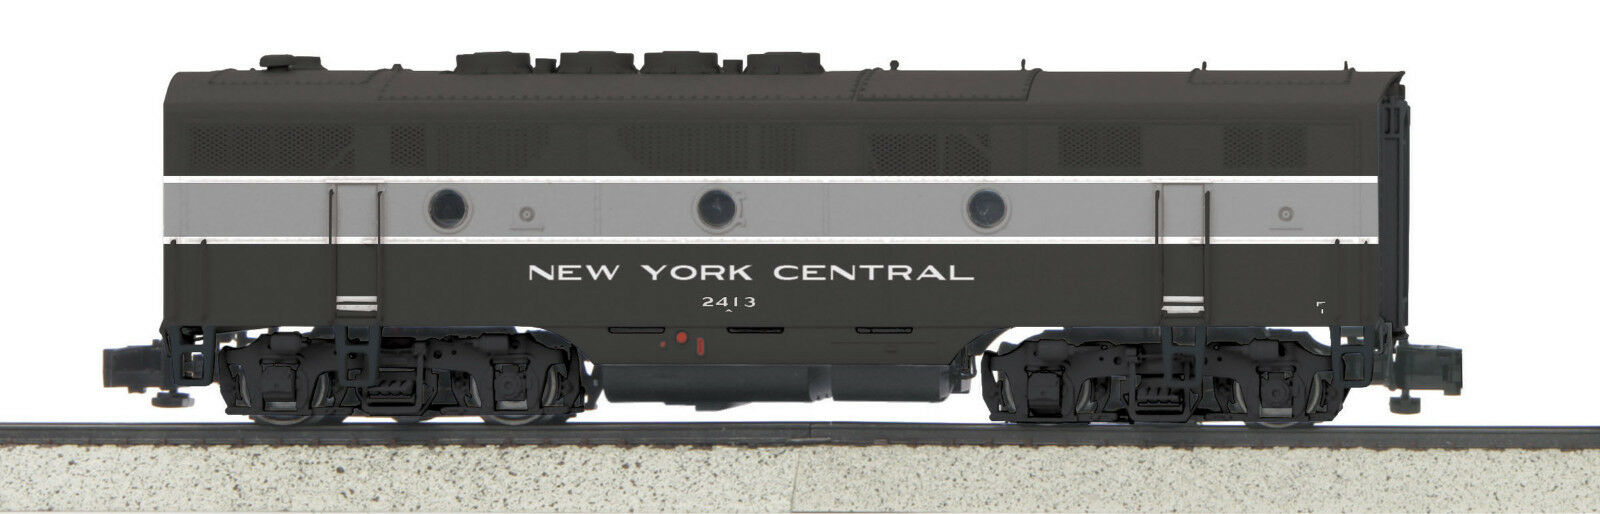 MTH S Gauge New York Central F-3 B-Unit w PS-3 Sound and DCC 35-20009-1